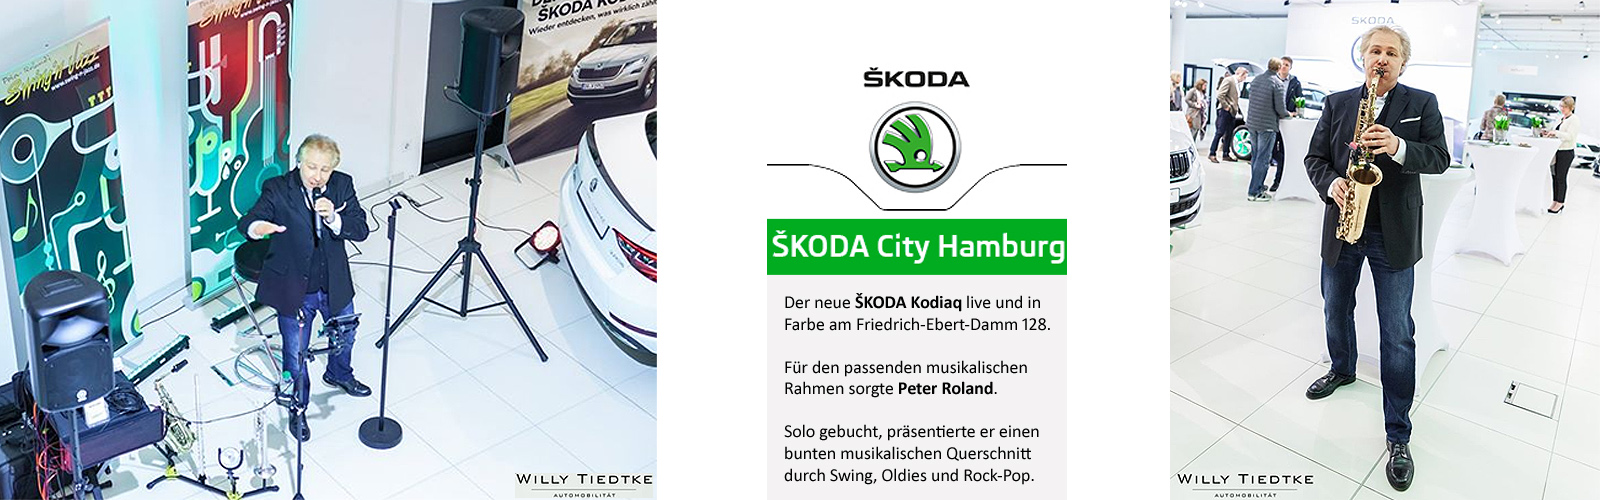 Skoda City Hamburg Peter Roland Solo